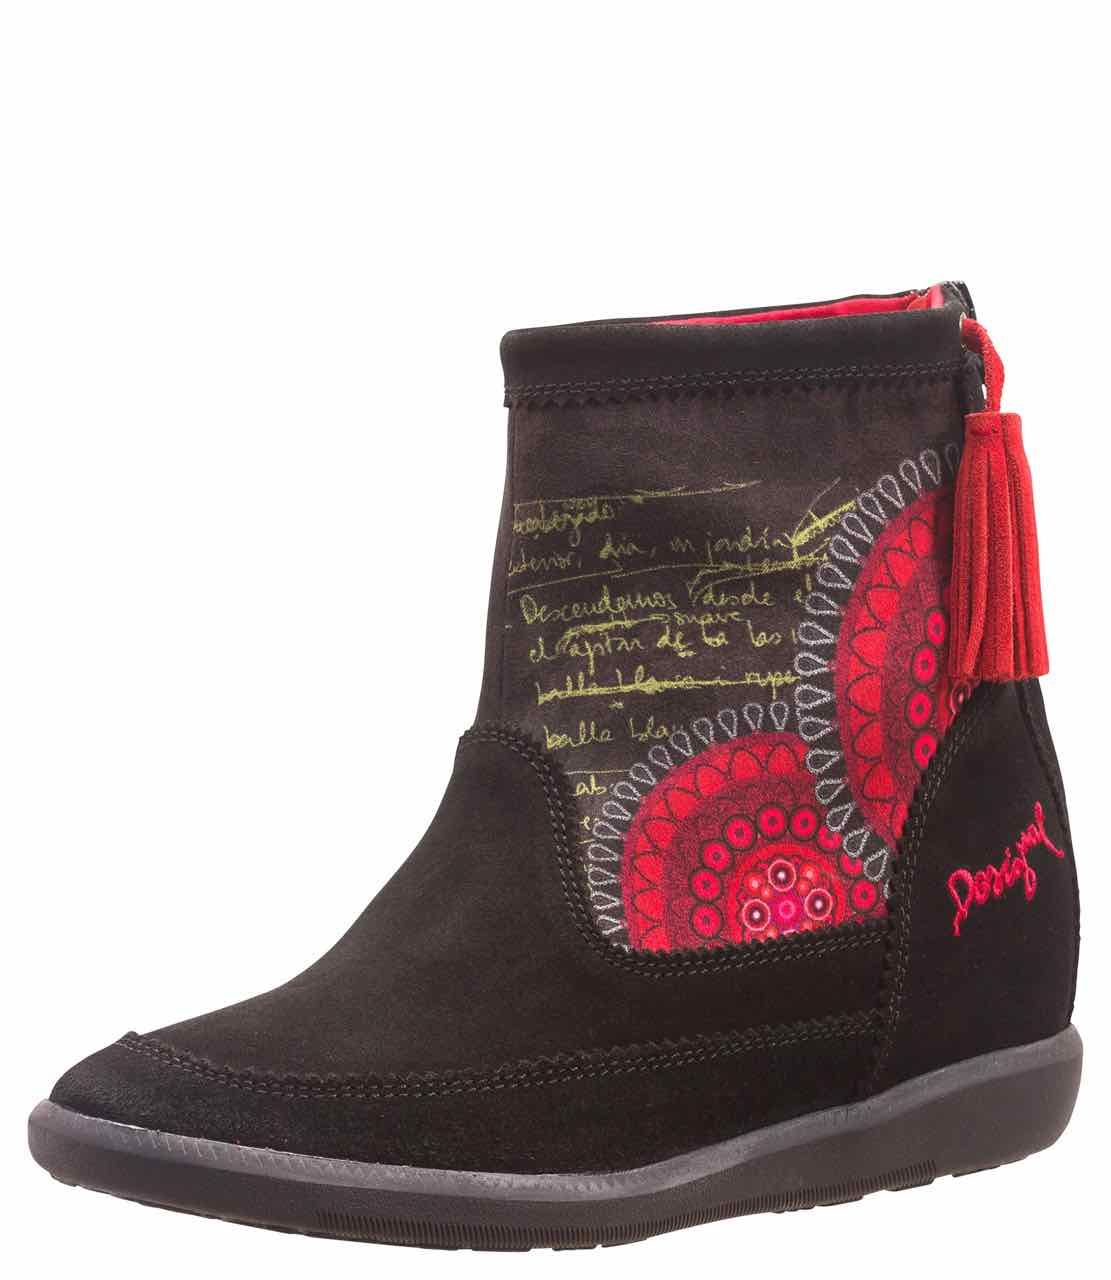 Ausverkauf authentisch outlet Desigual Boots Indy, Black and Red Wedge Boot | Casual boots